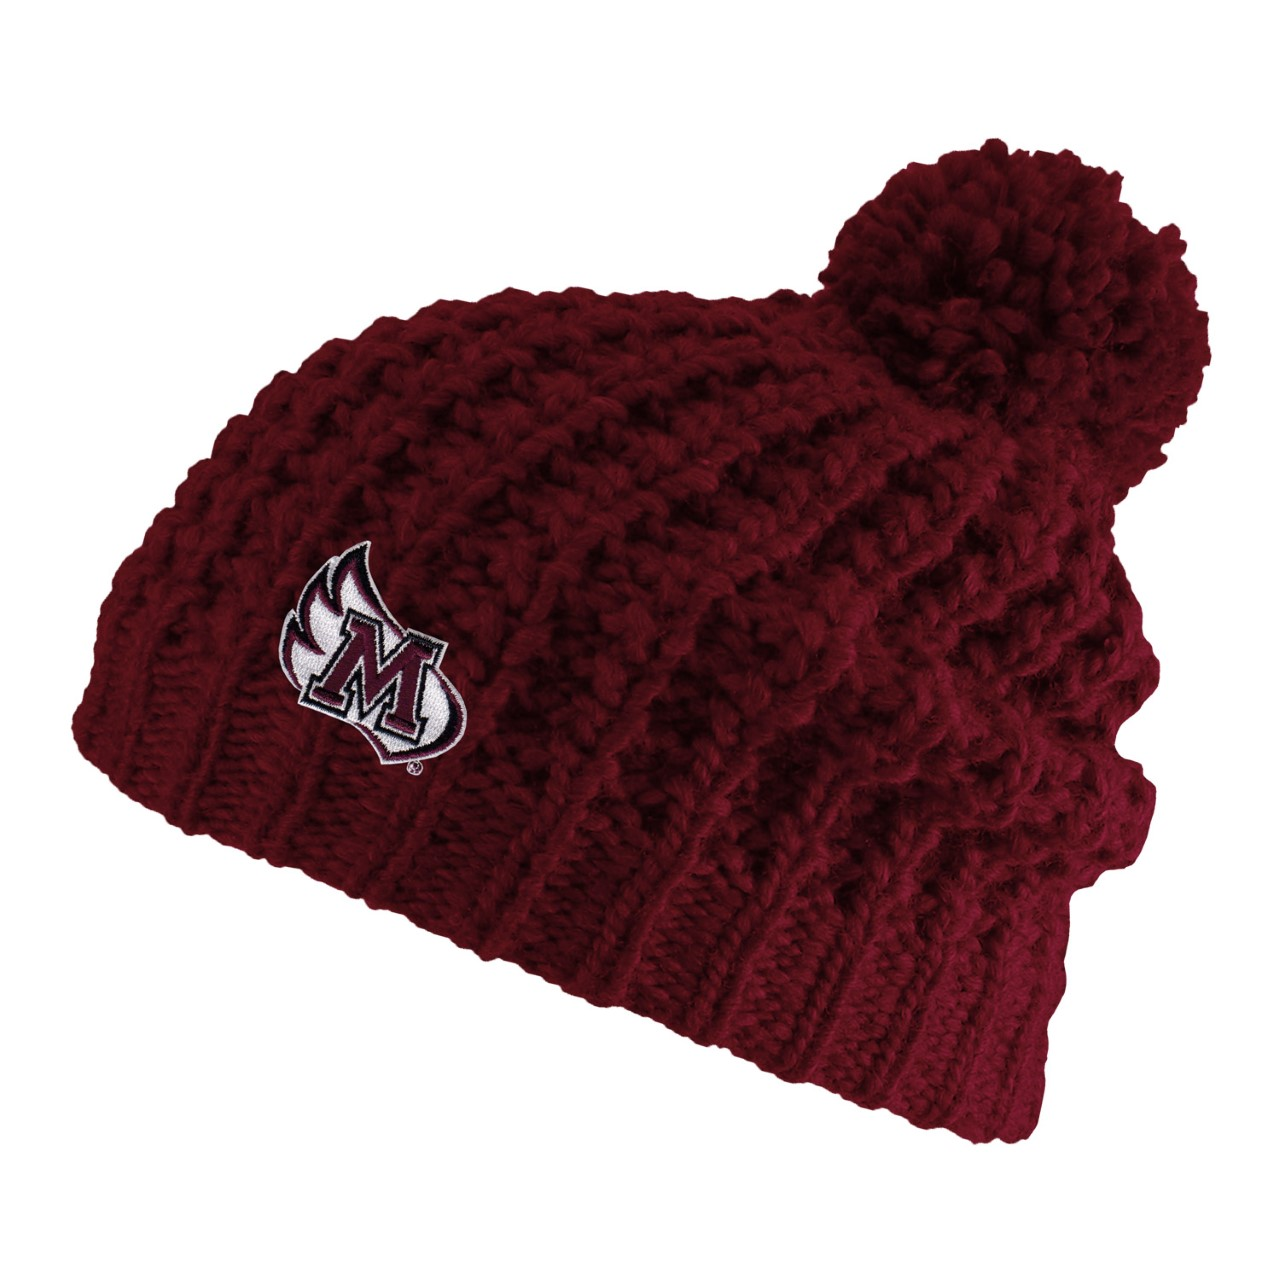 Image for the Chunky Knit Hat w/ Pom, Burgundy product